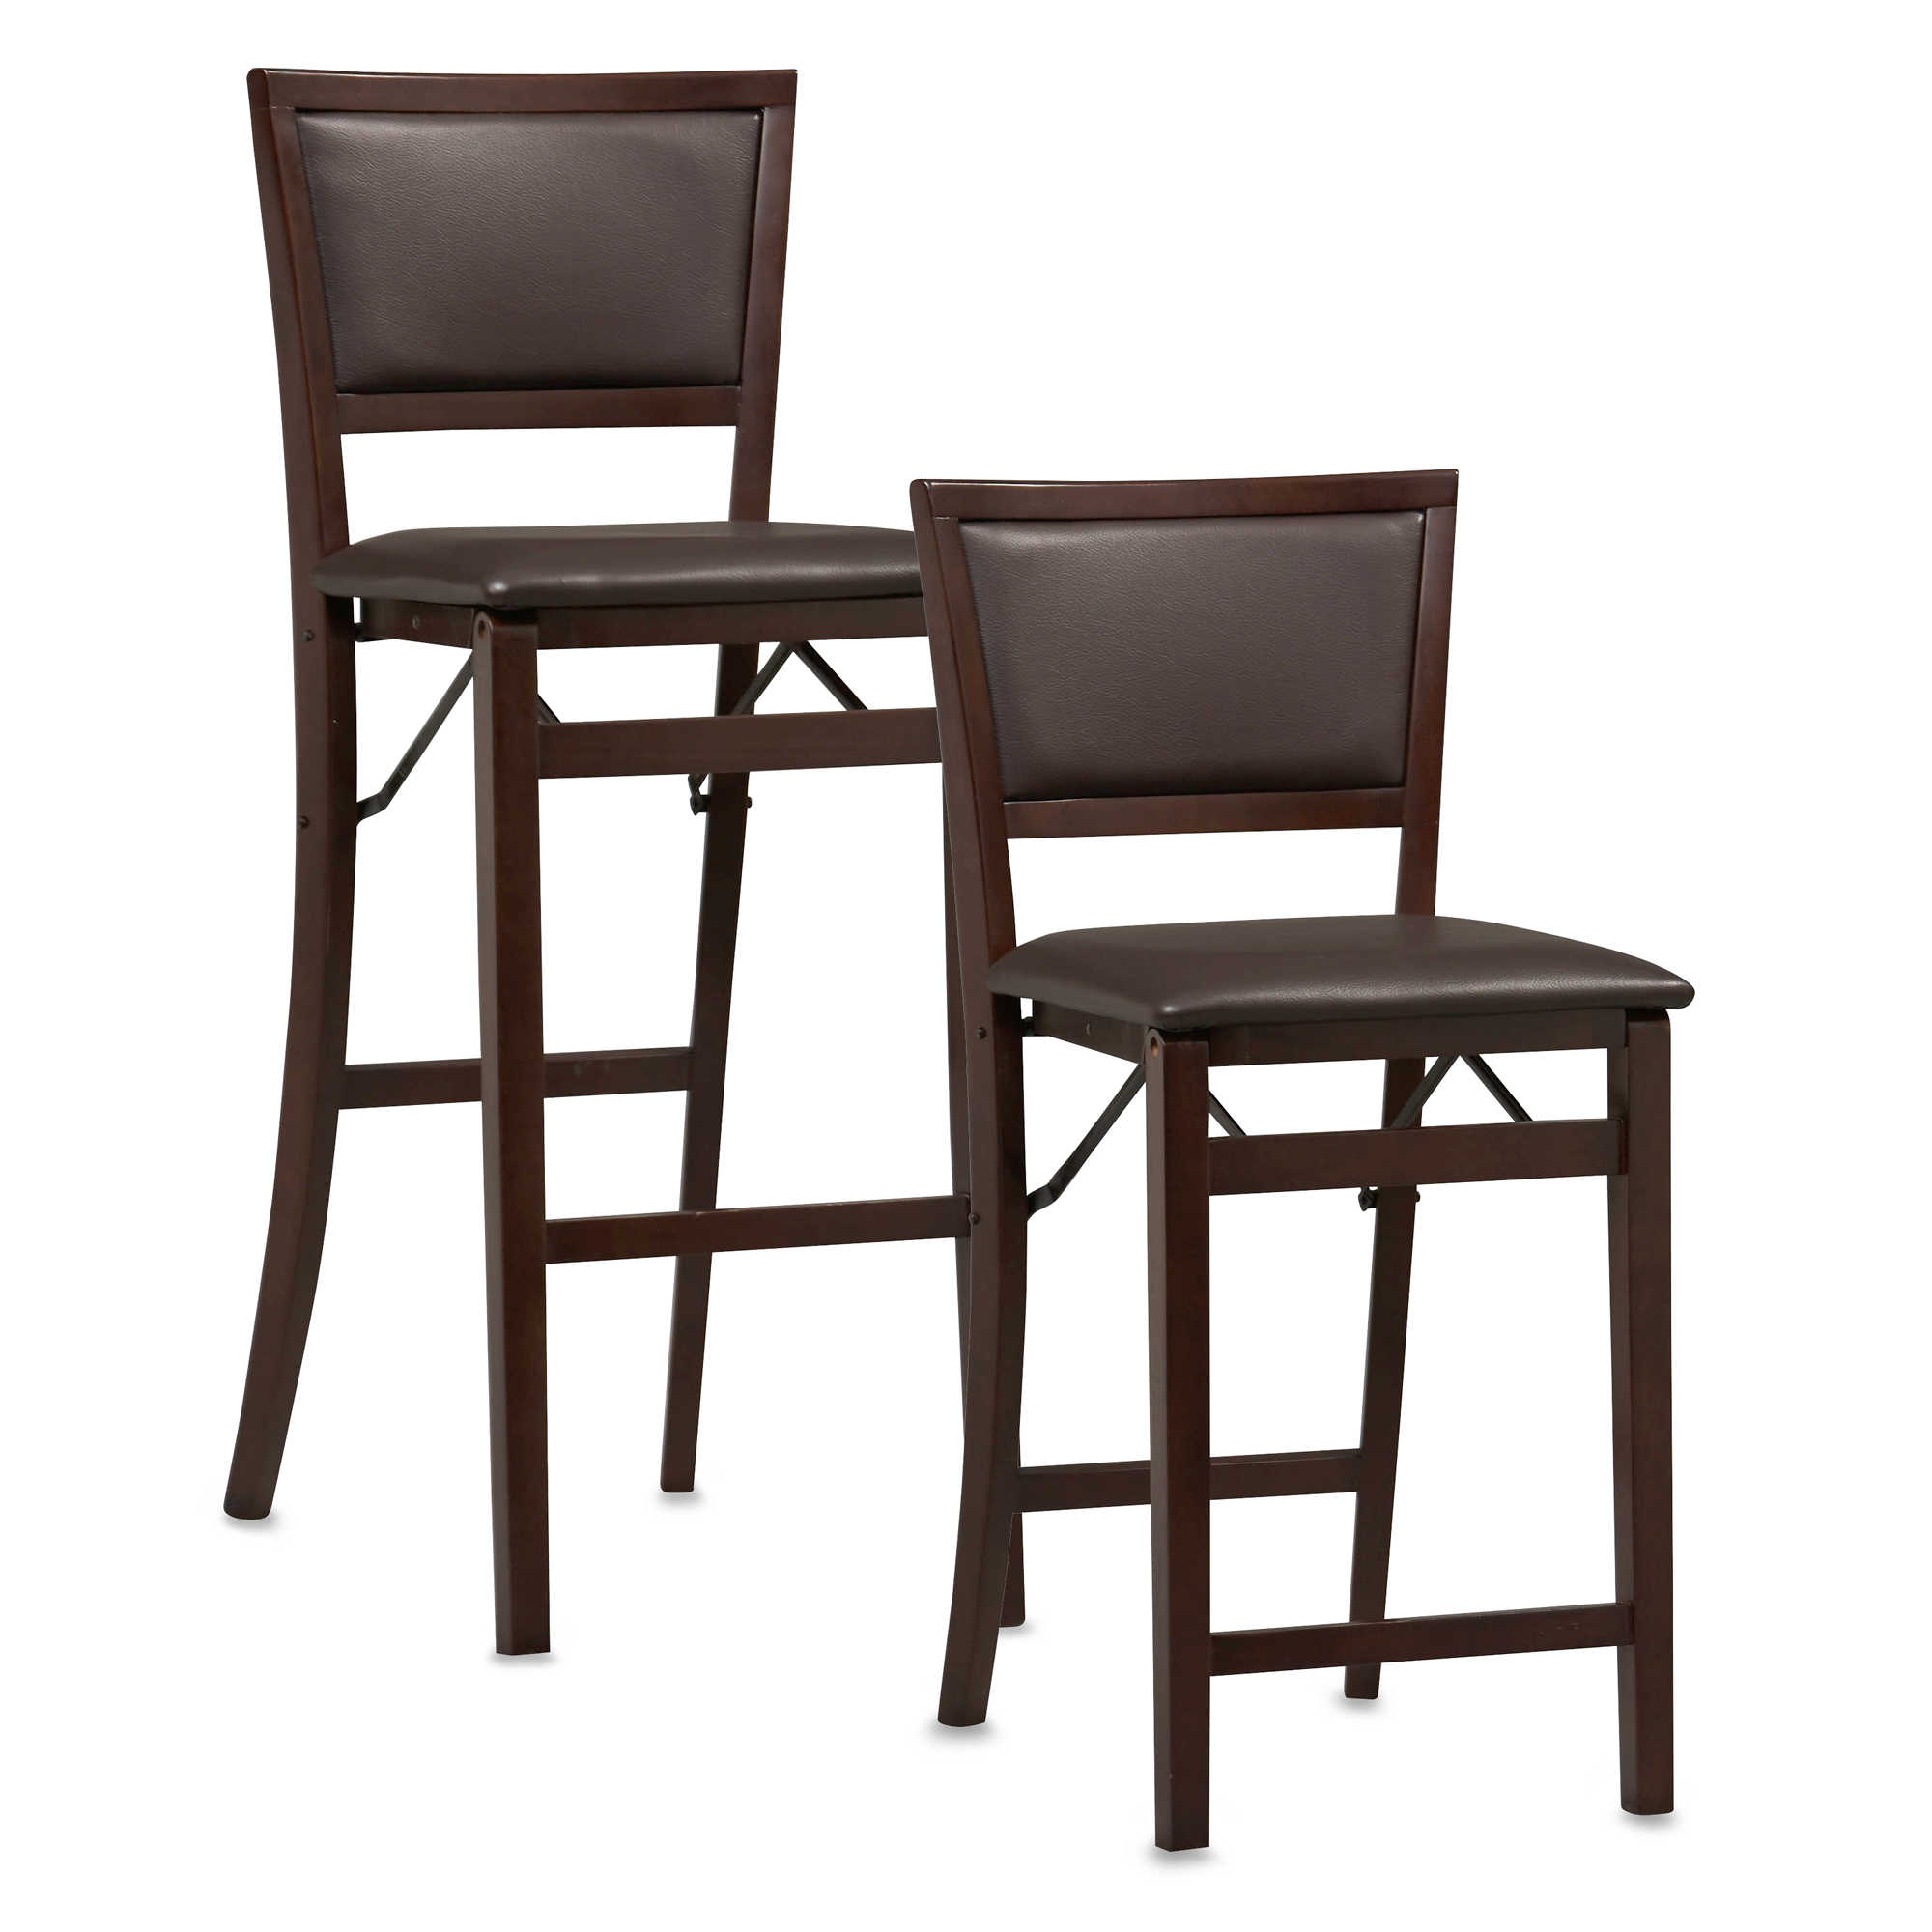 ground amazon costway dining pub chair height stools kitchen bistro counter from bar folding to stool dp com of seat set